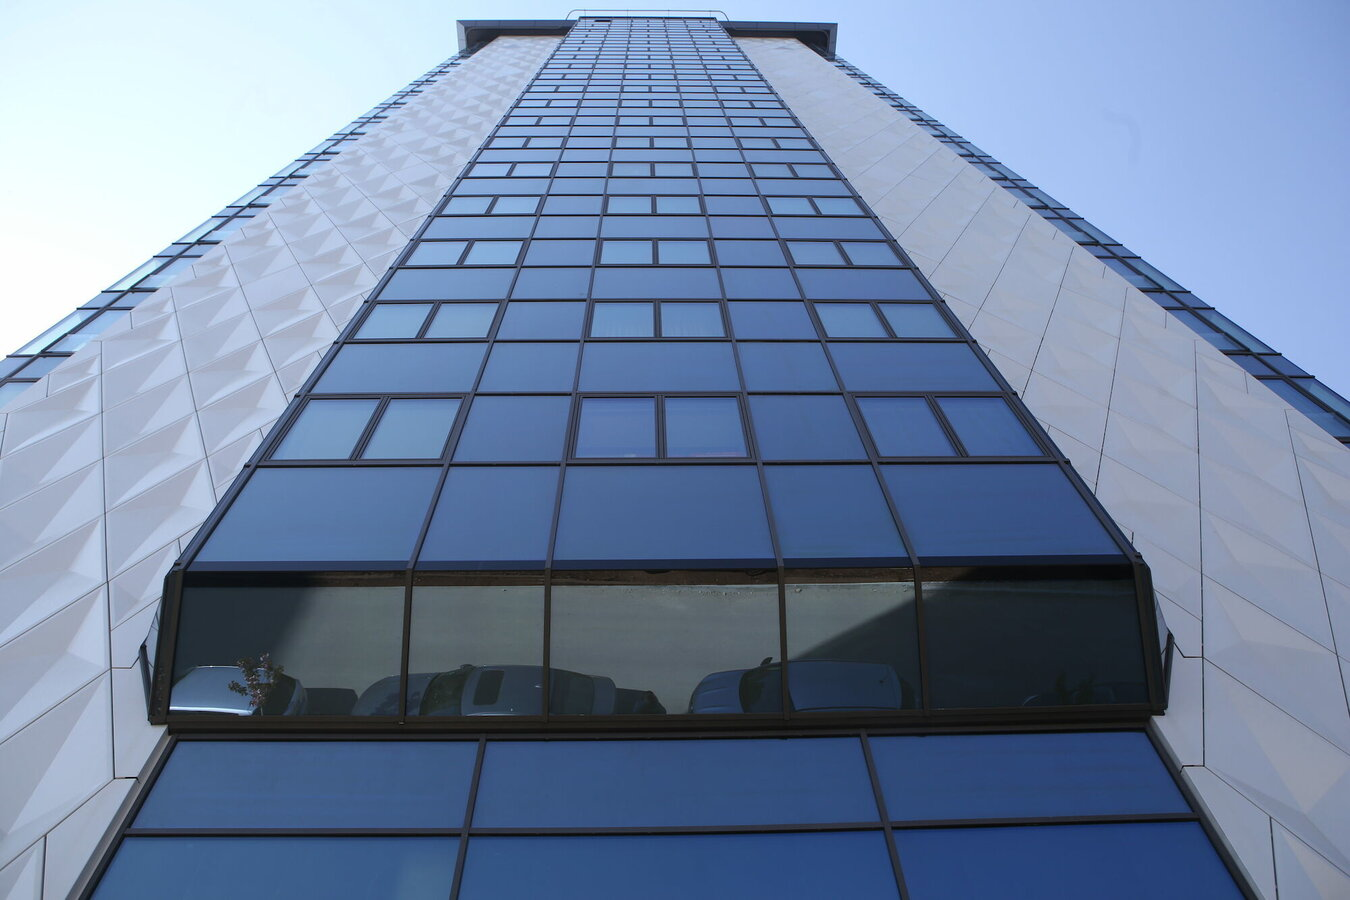 CW 50-HI Curtain Walls, SlimLine 38 Windows, Hi-Finity Sliding Systems and RB Glass Complementary Systems - Apartmentcomplex Diamond 1 located in Sochi, Bulgaria